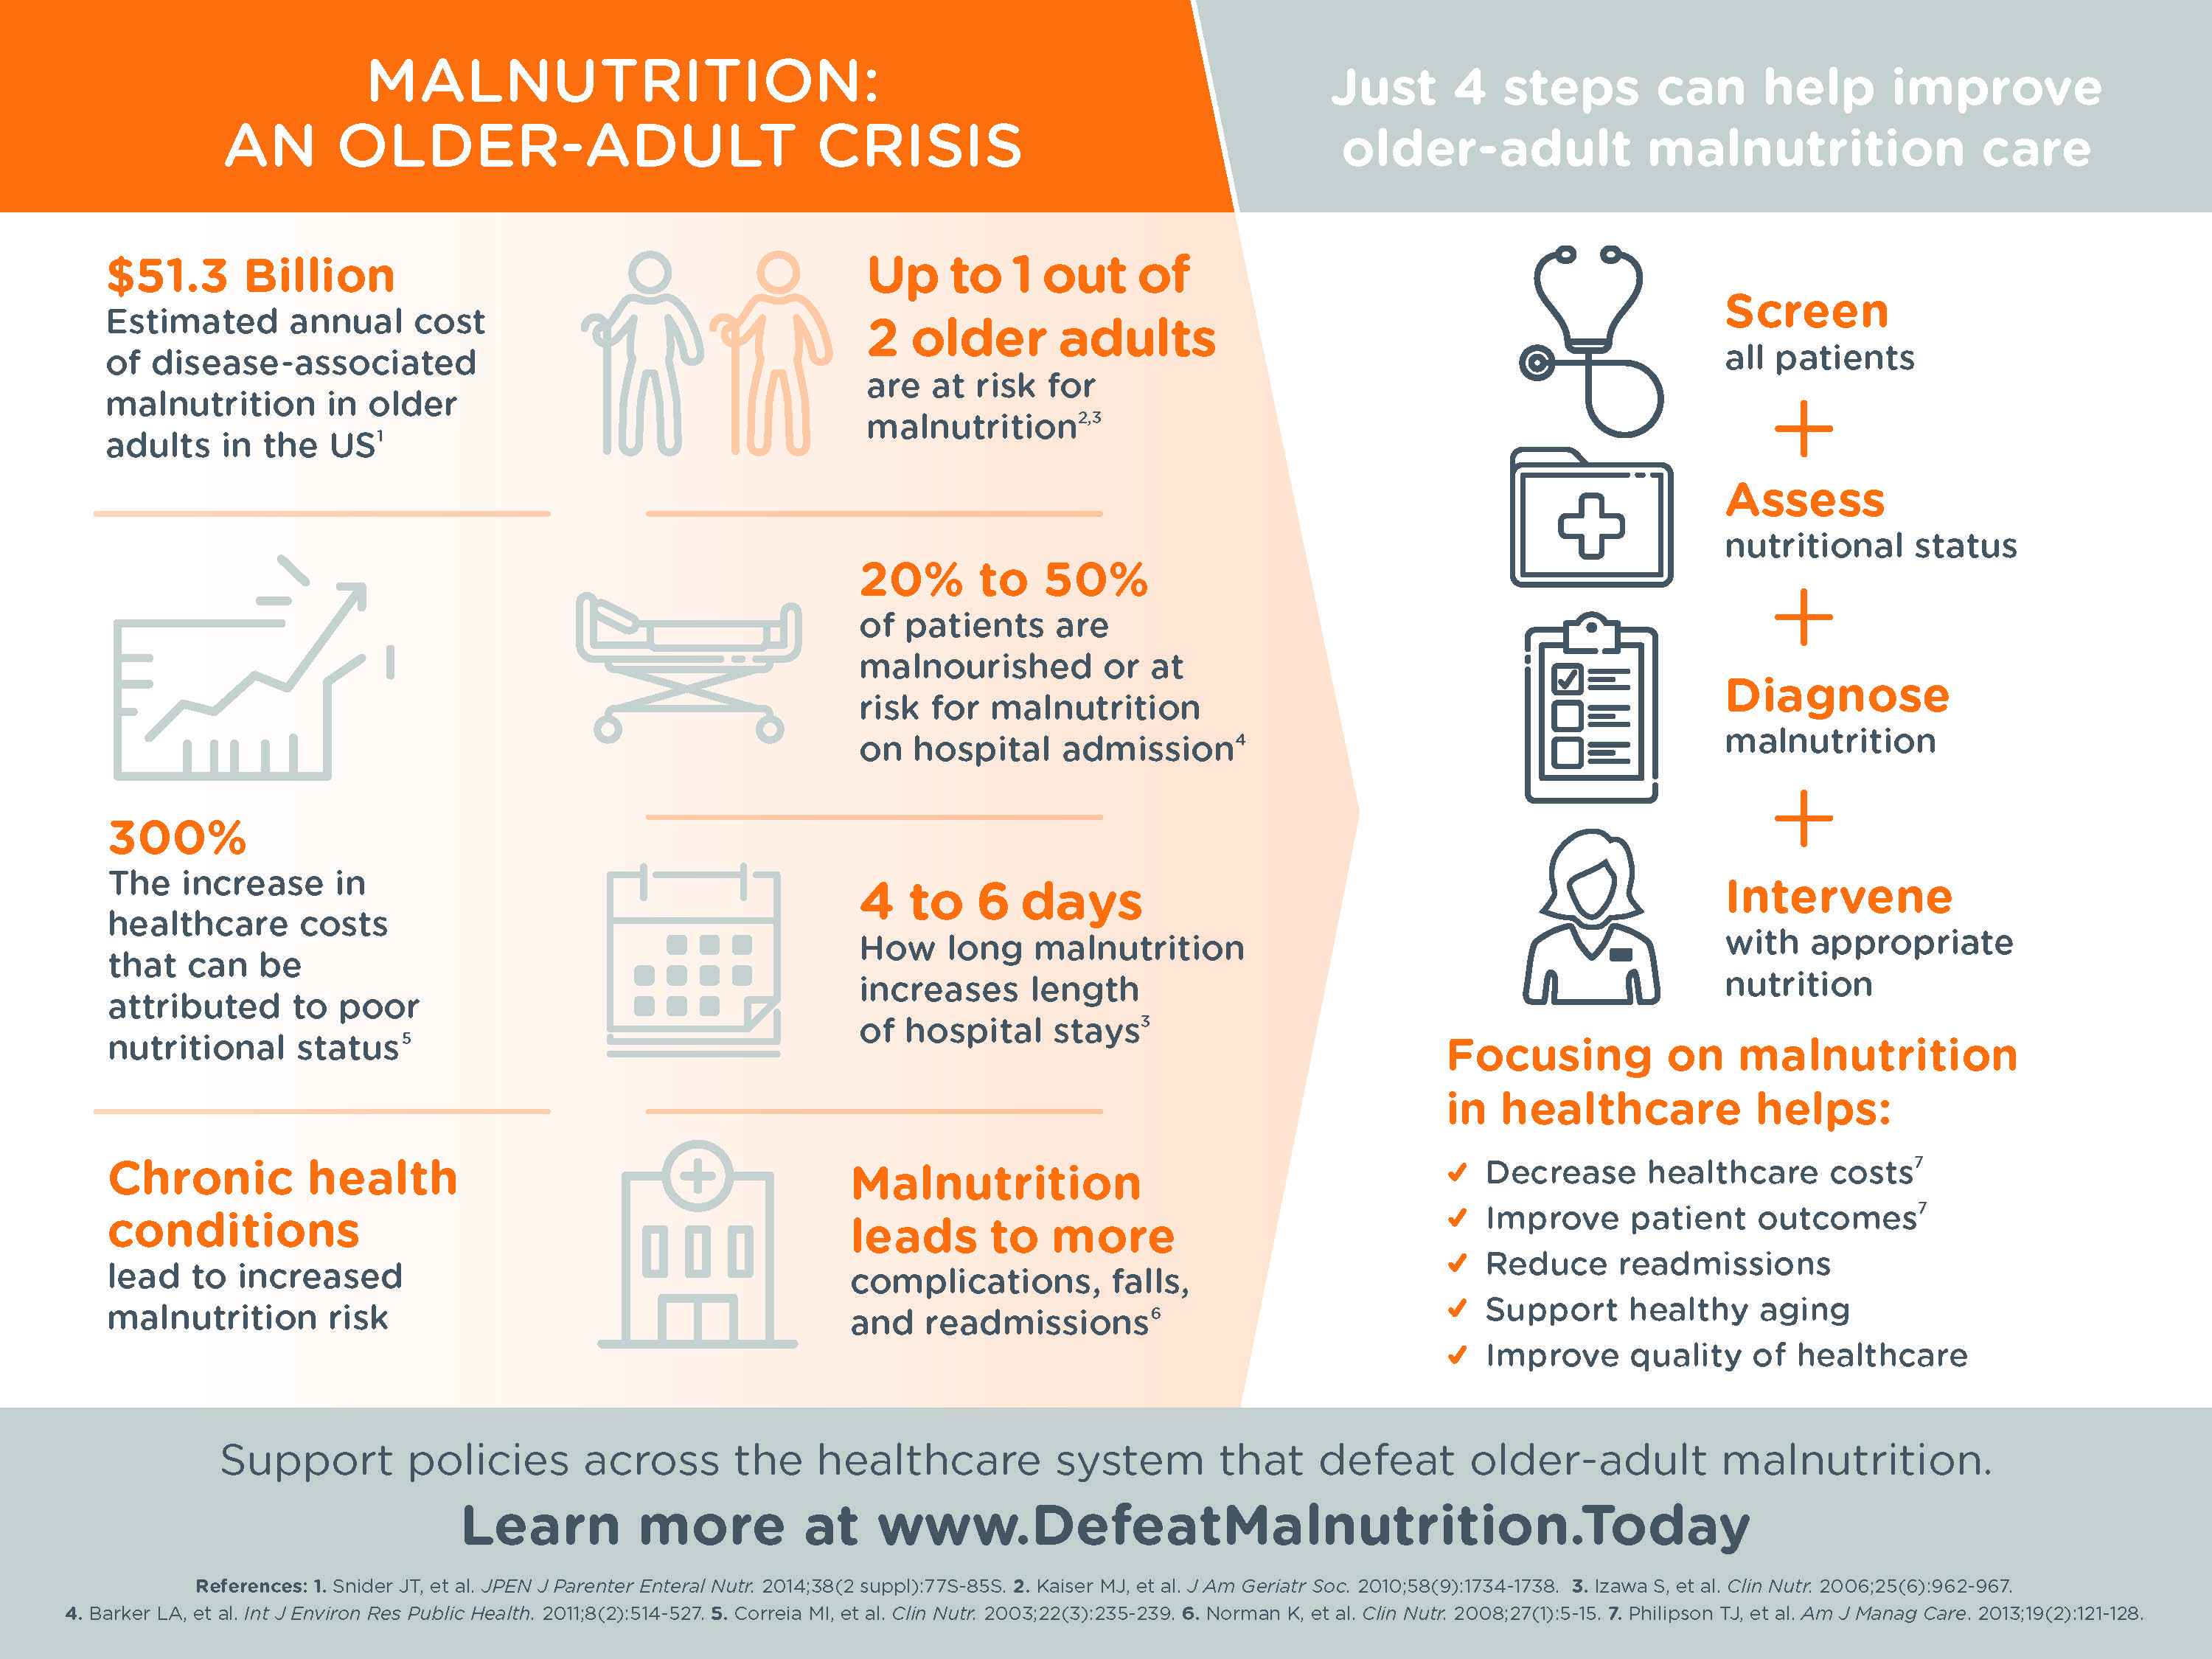 Malnutrition: An Older Adult Crisis